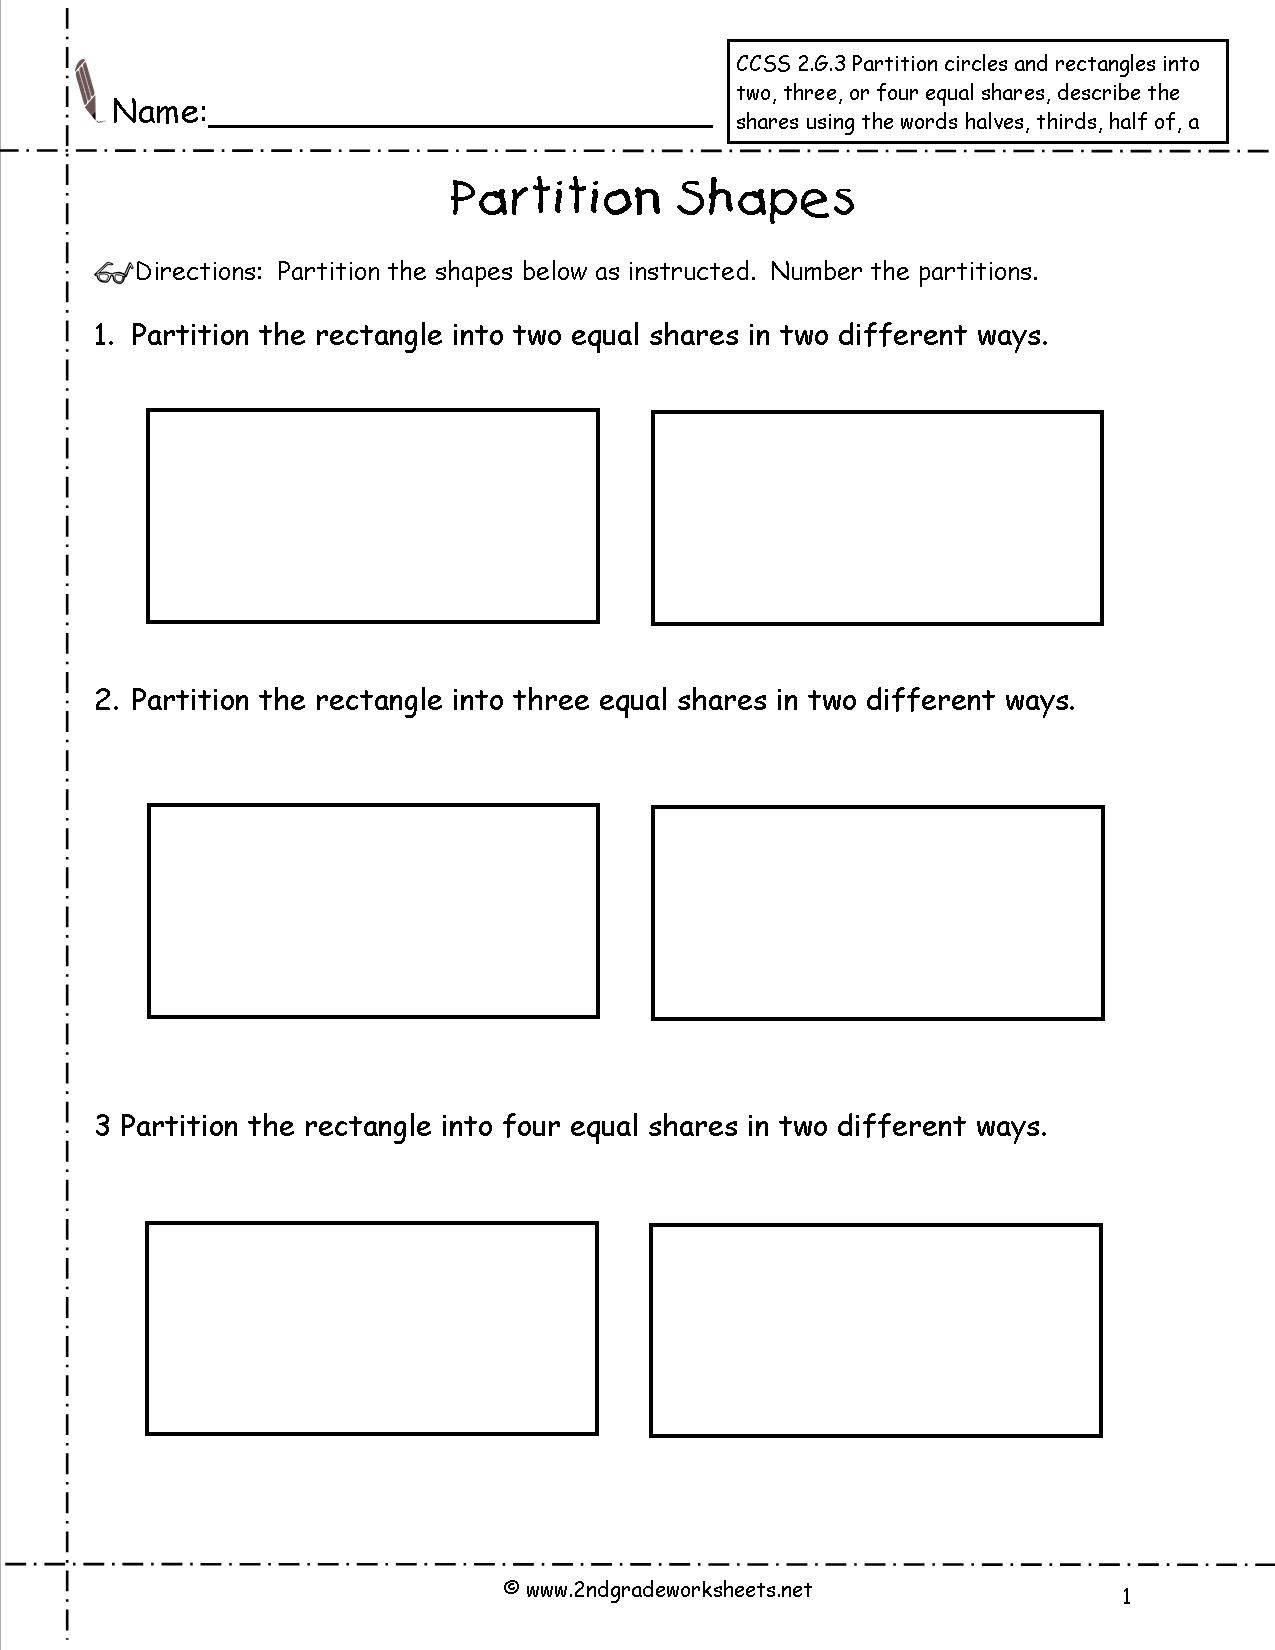 Partitioning Shapes Into Equal Parts Worksheet